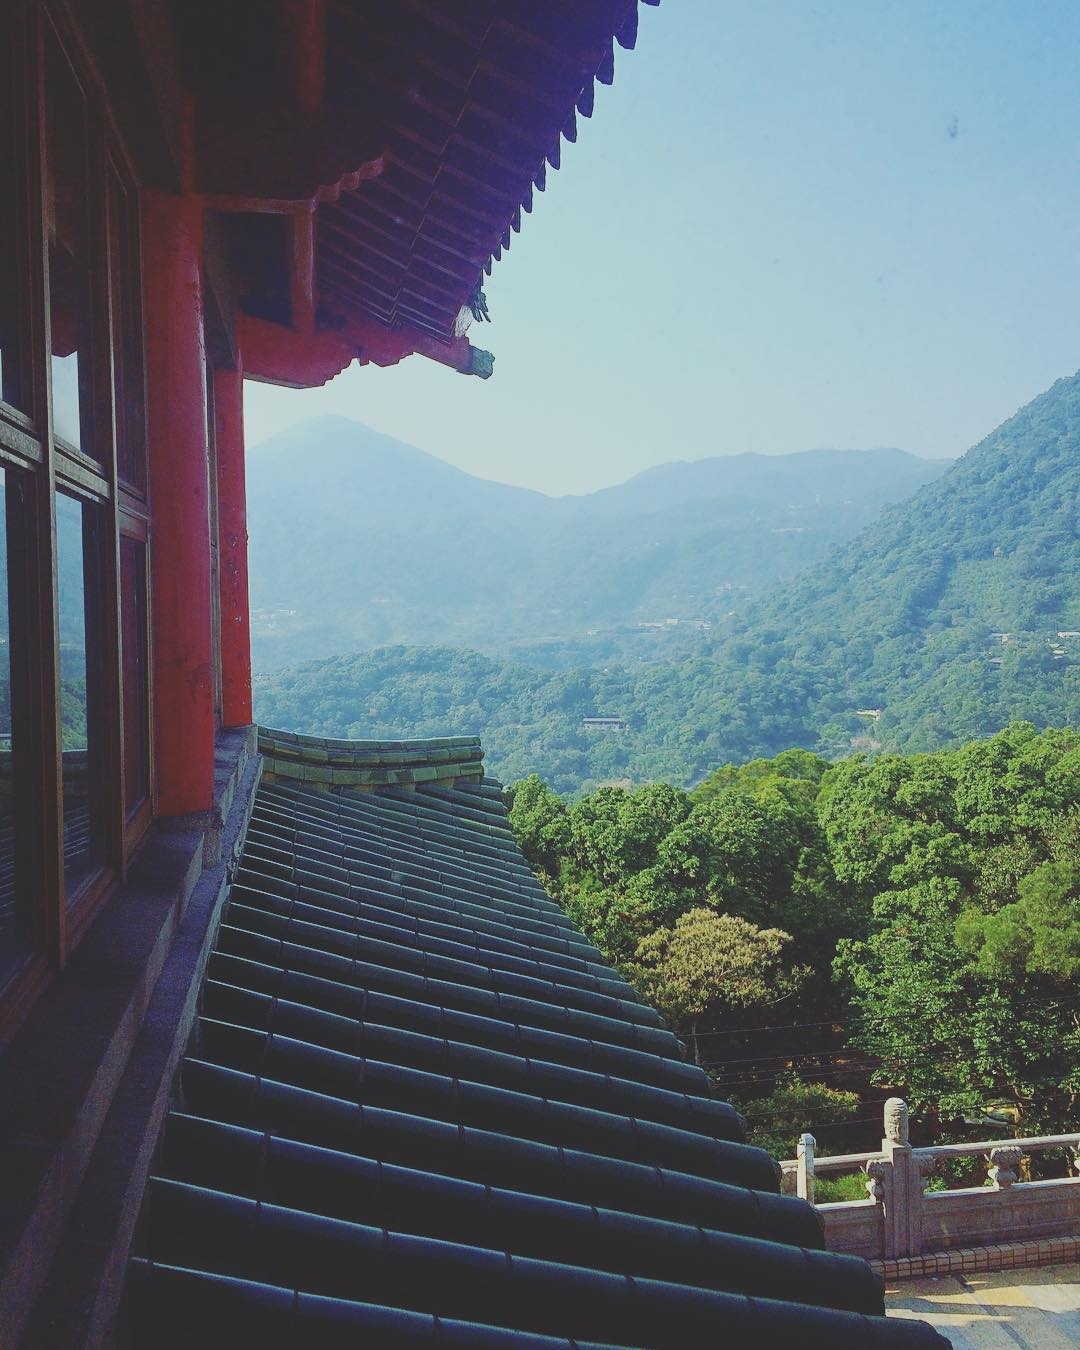 Another shot from my research trip to Taiwan for THE ASTONISHING COLOR OF AFTER. Leigh's mother, as a music student at the Chinese Culture University, would often have paused to gaze out the window at this exact view.